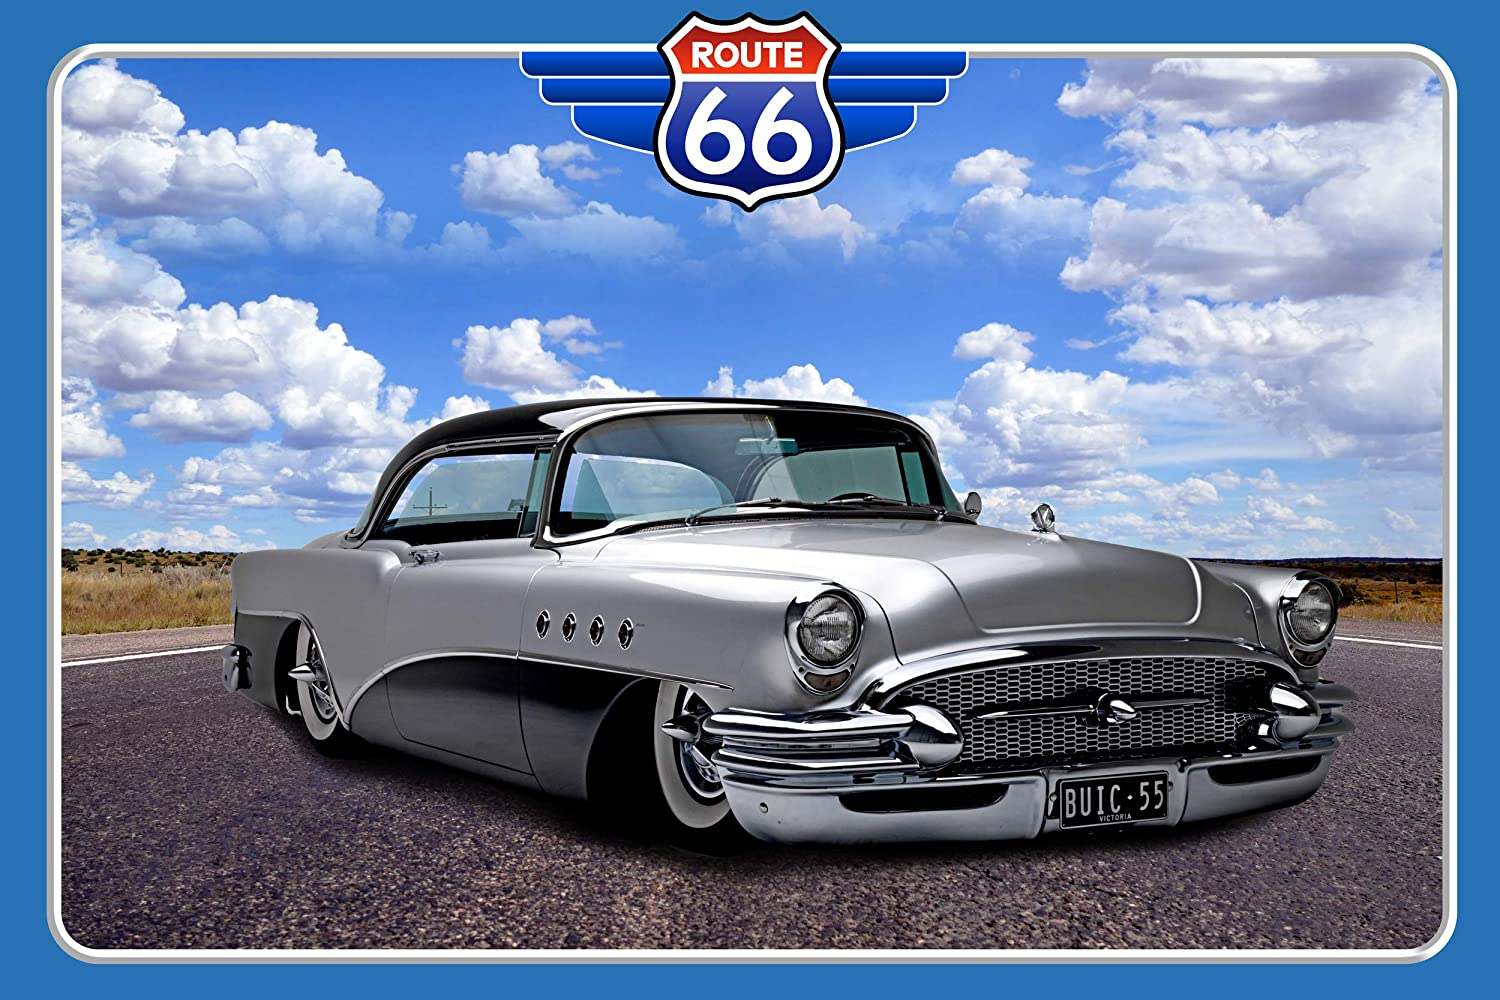 1955 Buick Century, Road Trip Route 66 Detroit :: American Vintage Classic Cars Poster